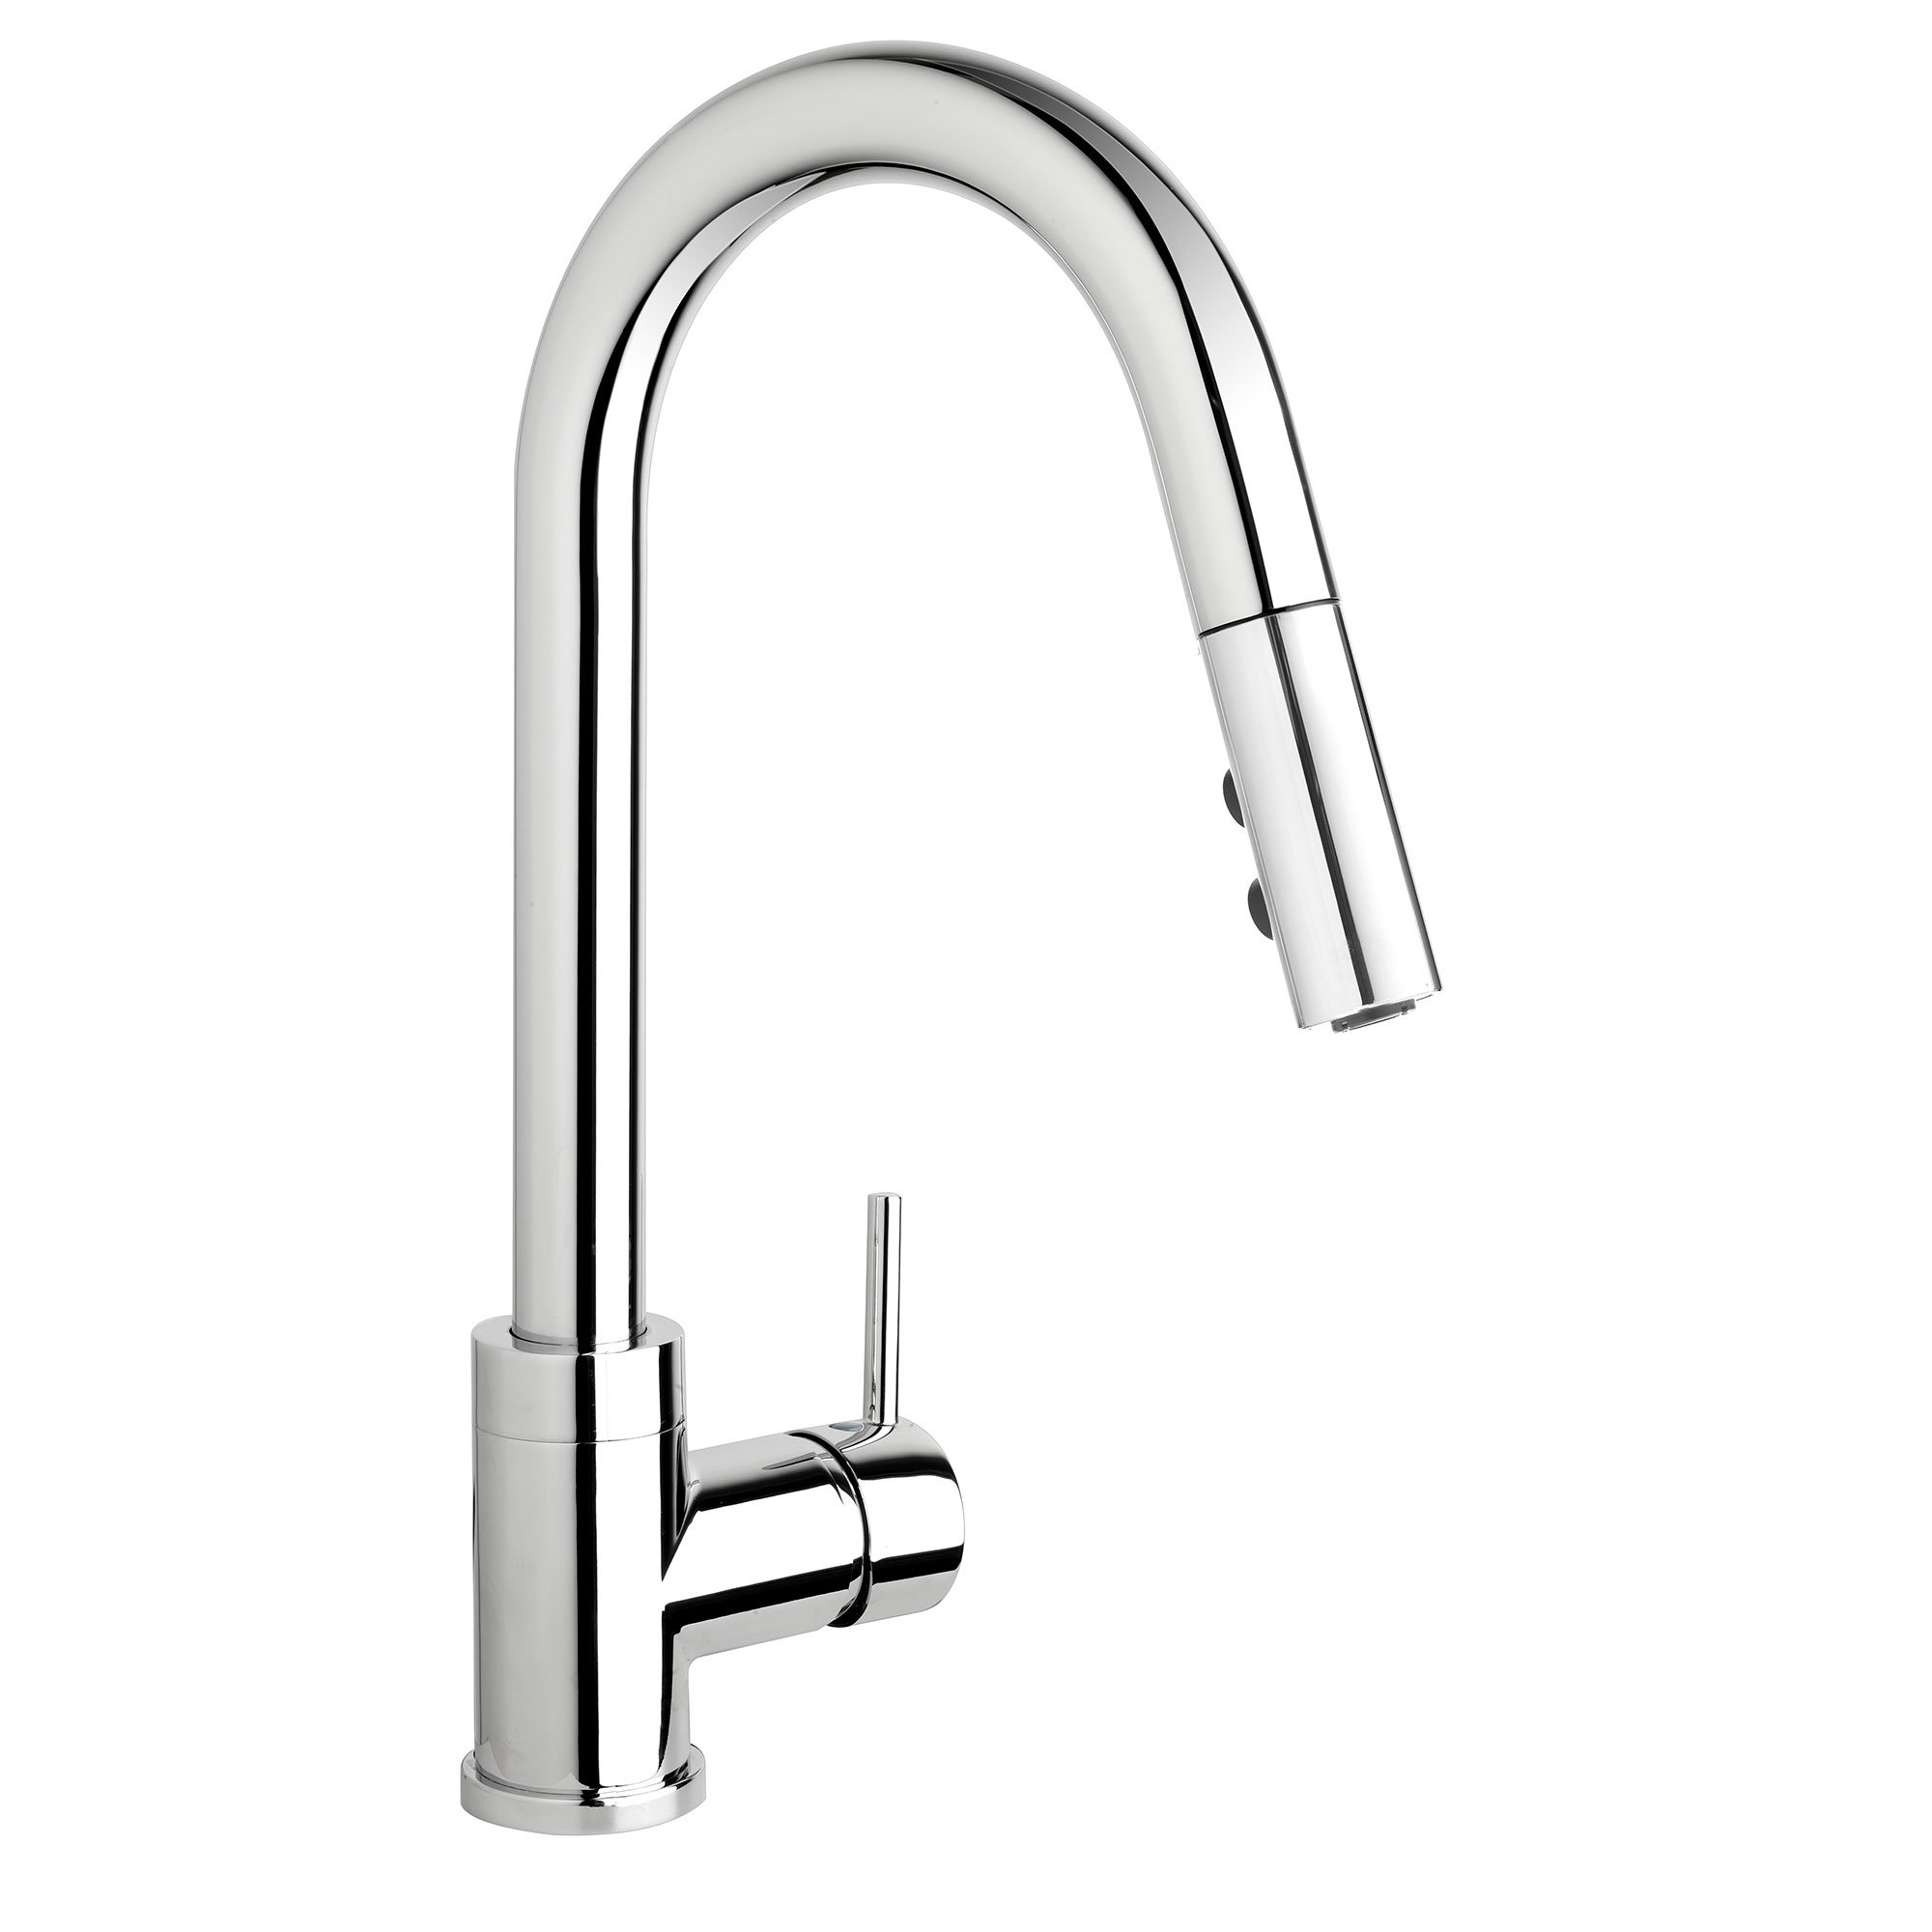 Belanger Slim Kitchen Sink Faucet With Swivel Pull Down Spout